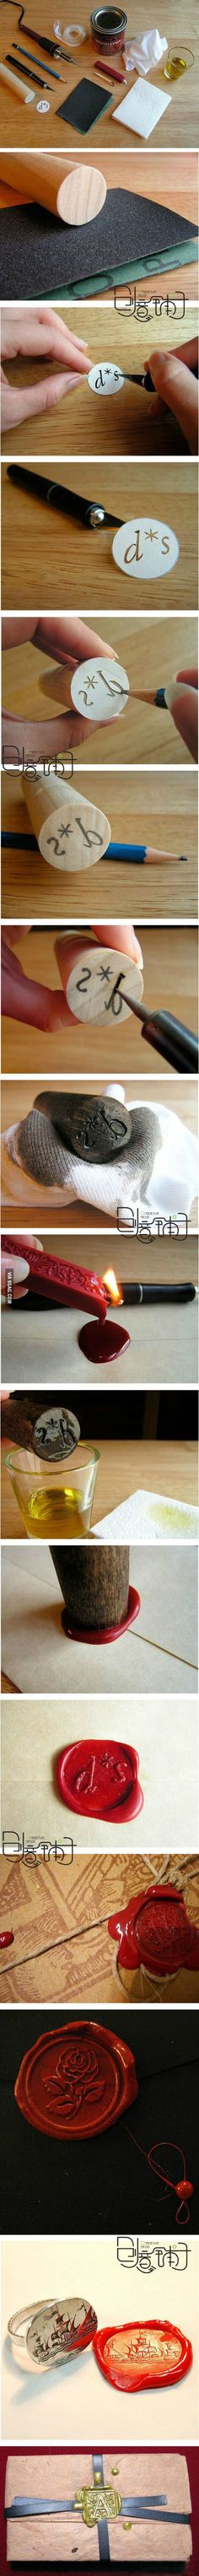 How to make your own wax seal - 9GAG